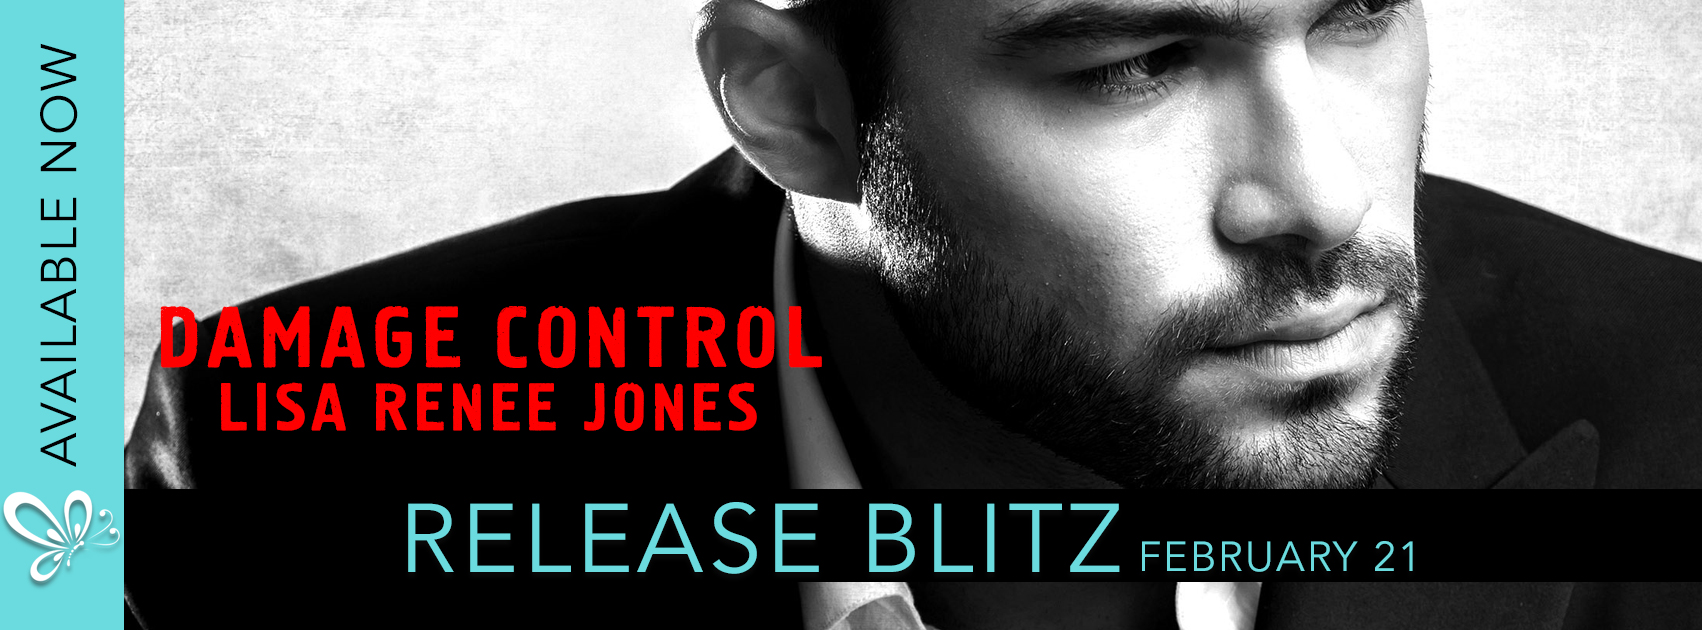 Damage Control by Lisa Renee Jones Release Blitz